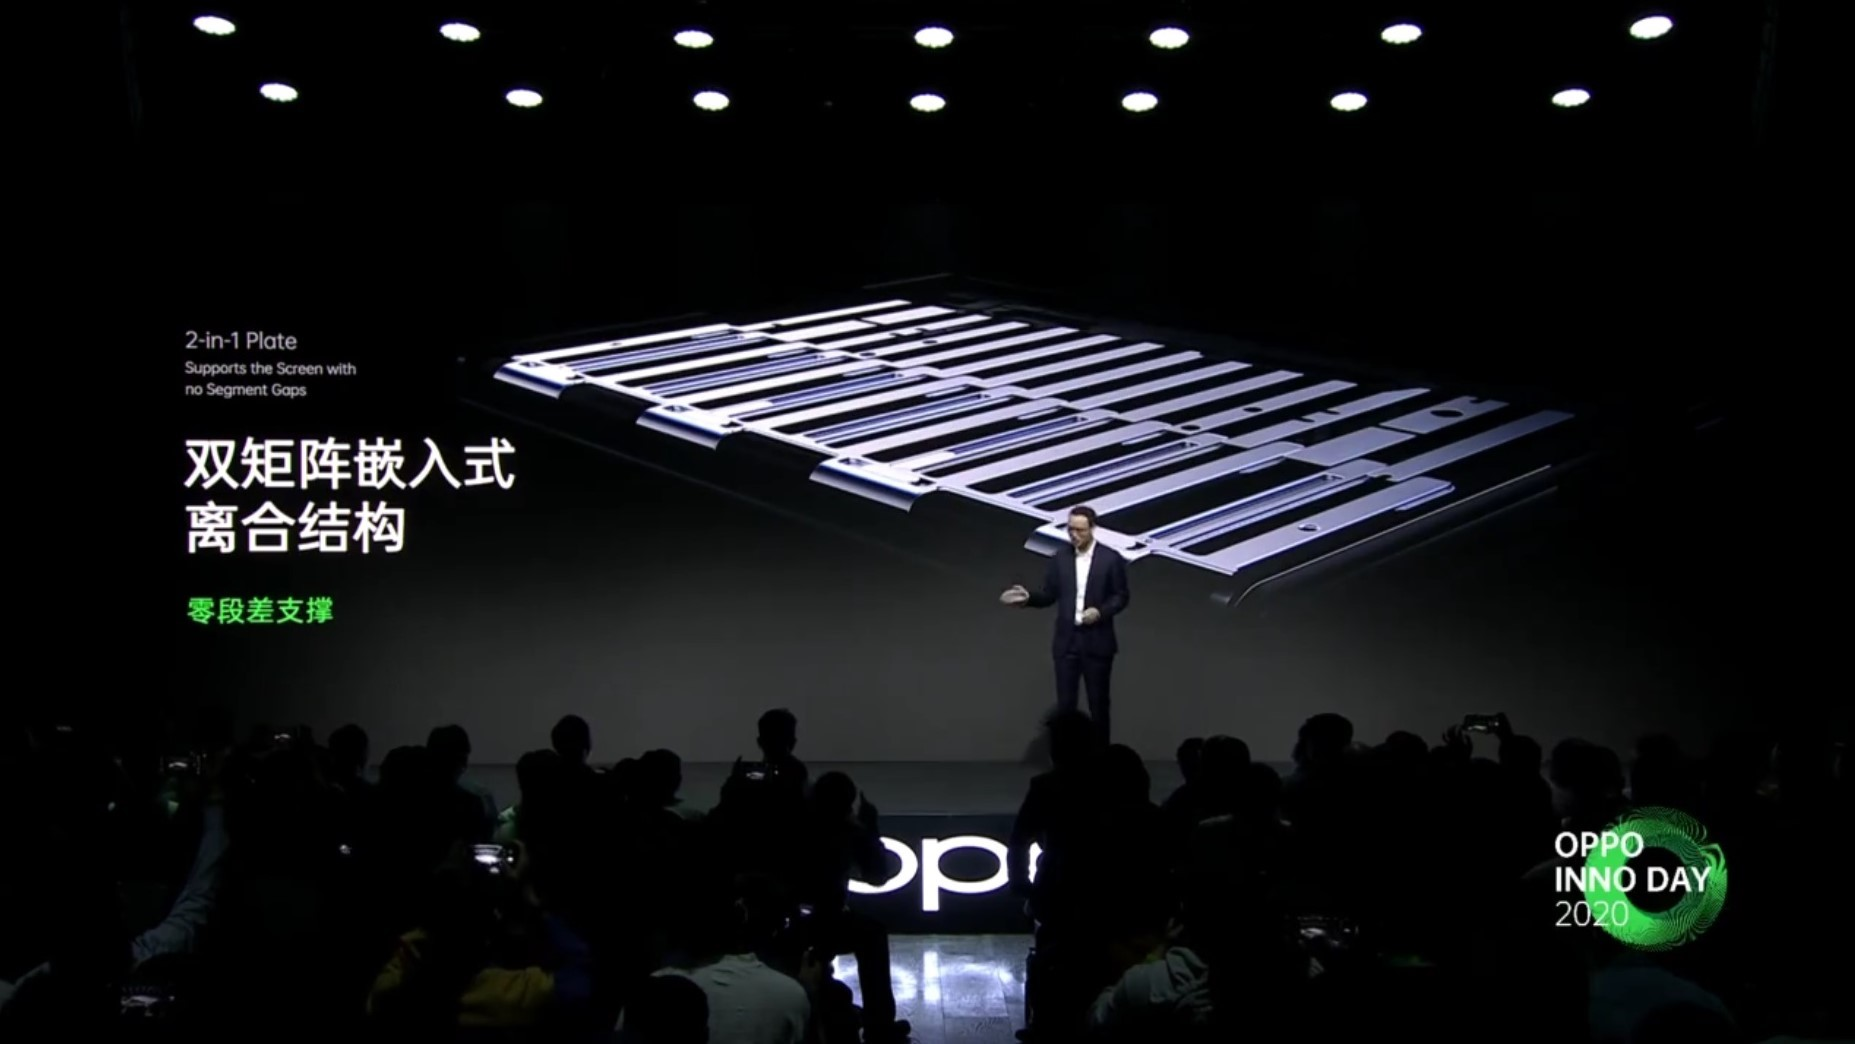 [Video] Guarda lo smartphone con display scorrevole di OPPO